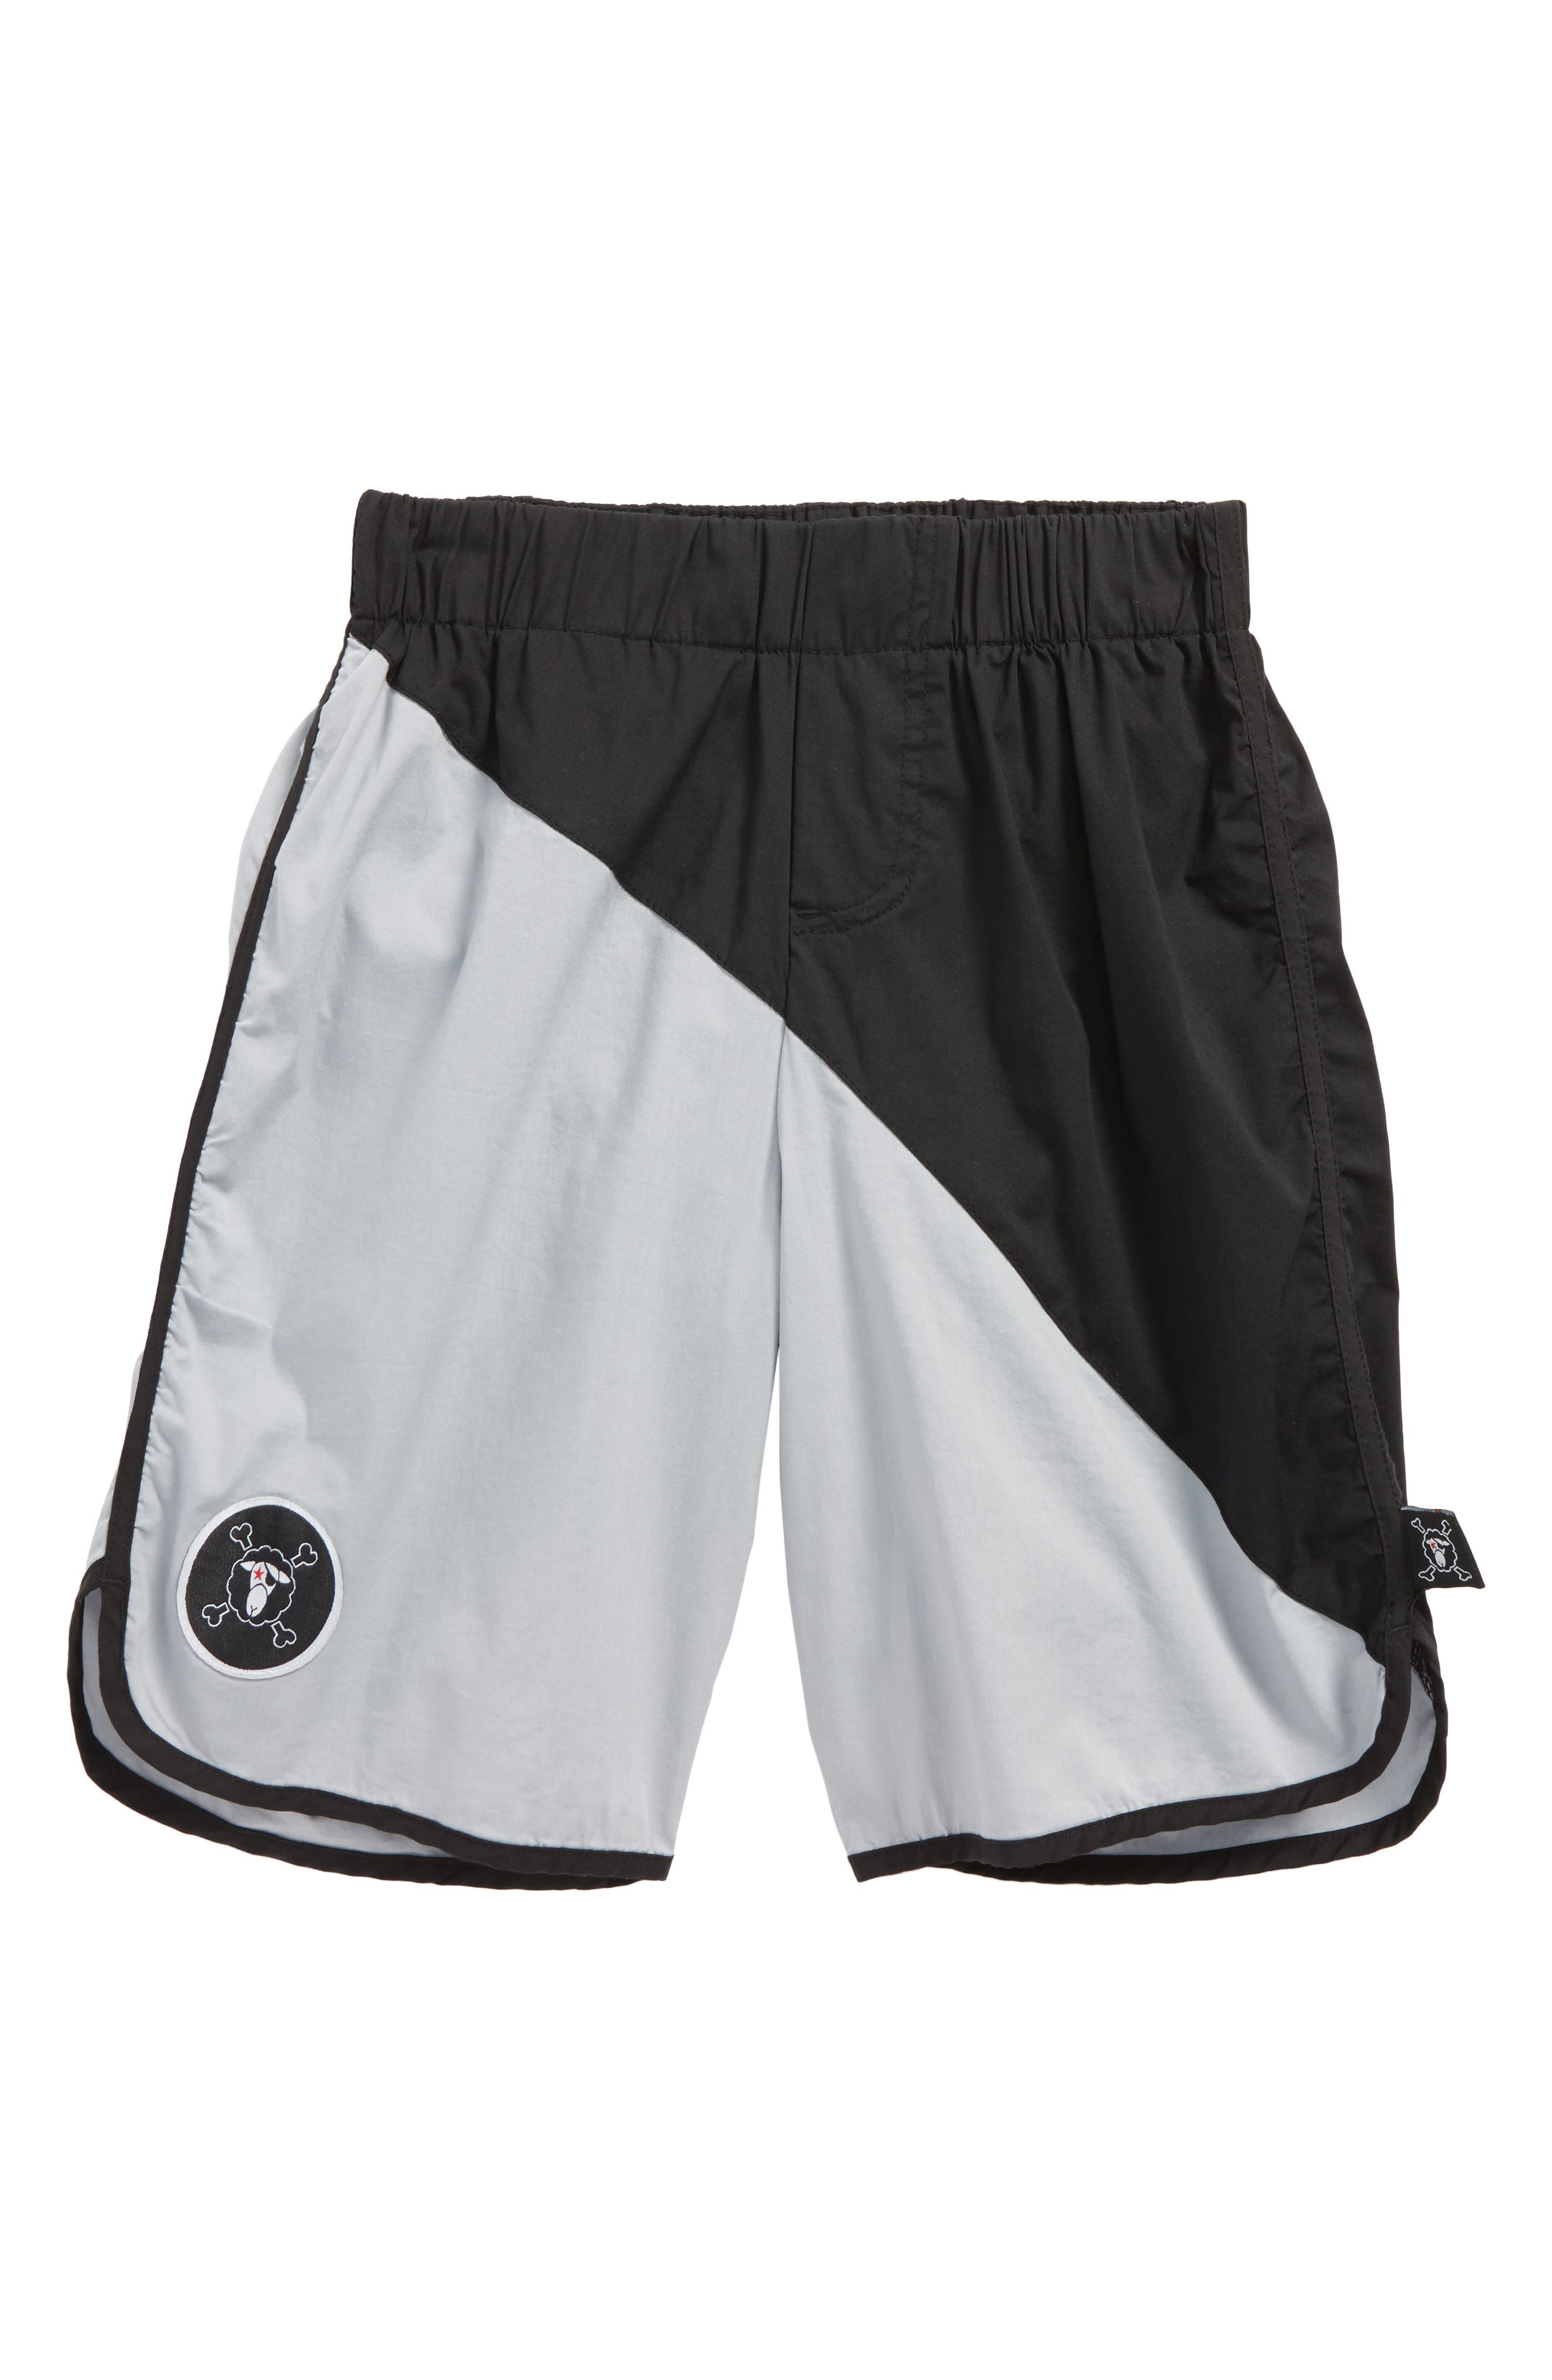 Colorblock Board Shorts,                         Main,                         color, 001